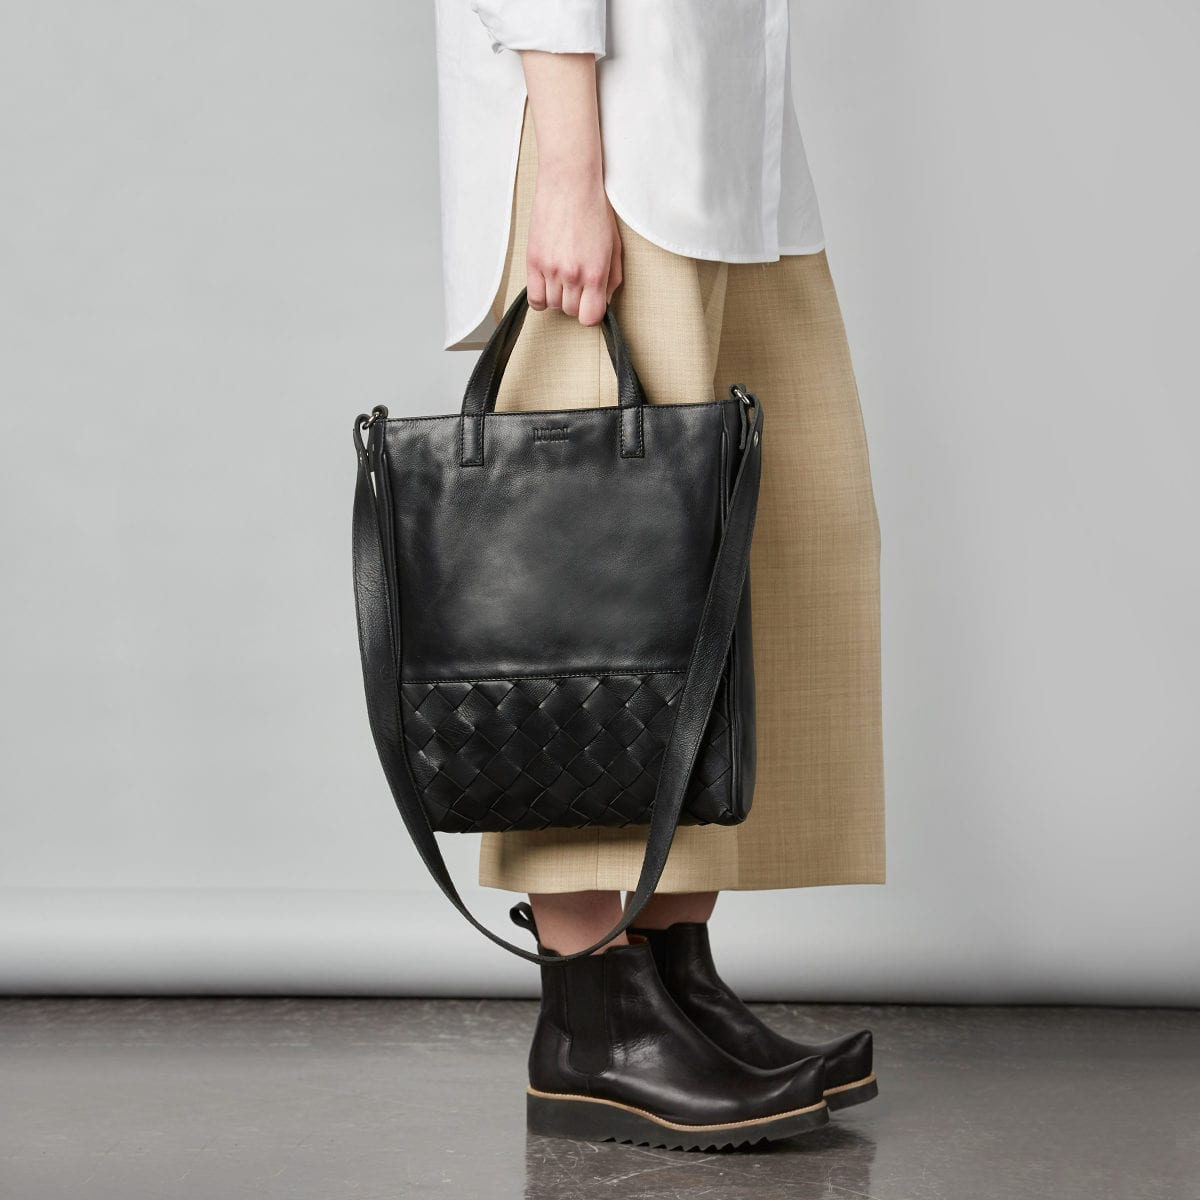 LUMI Signe Woven Tote in classic black. This minimalistic tote bag with woven textured details ticks all the boxes for a perfect day bag. Signe Tote fits a 13″ laptop and the light padding keeps it safe